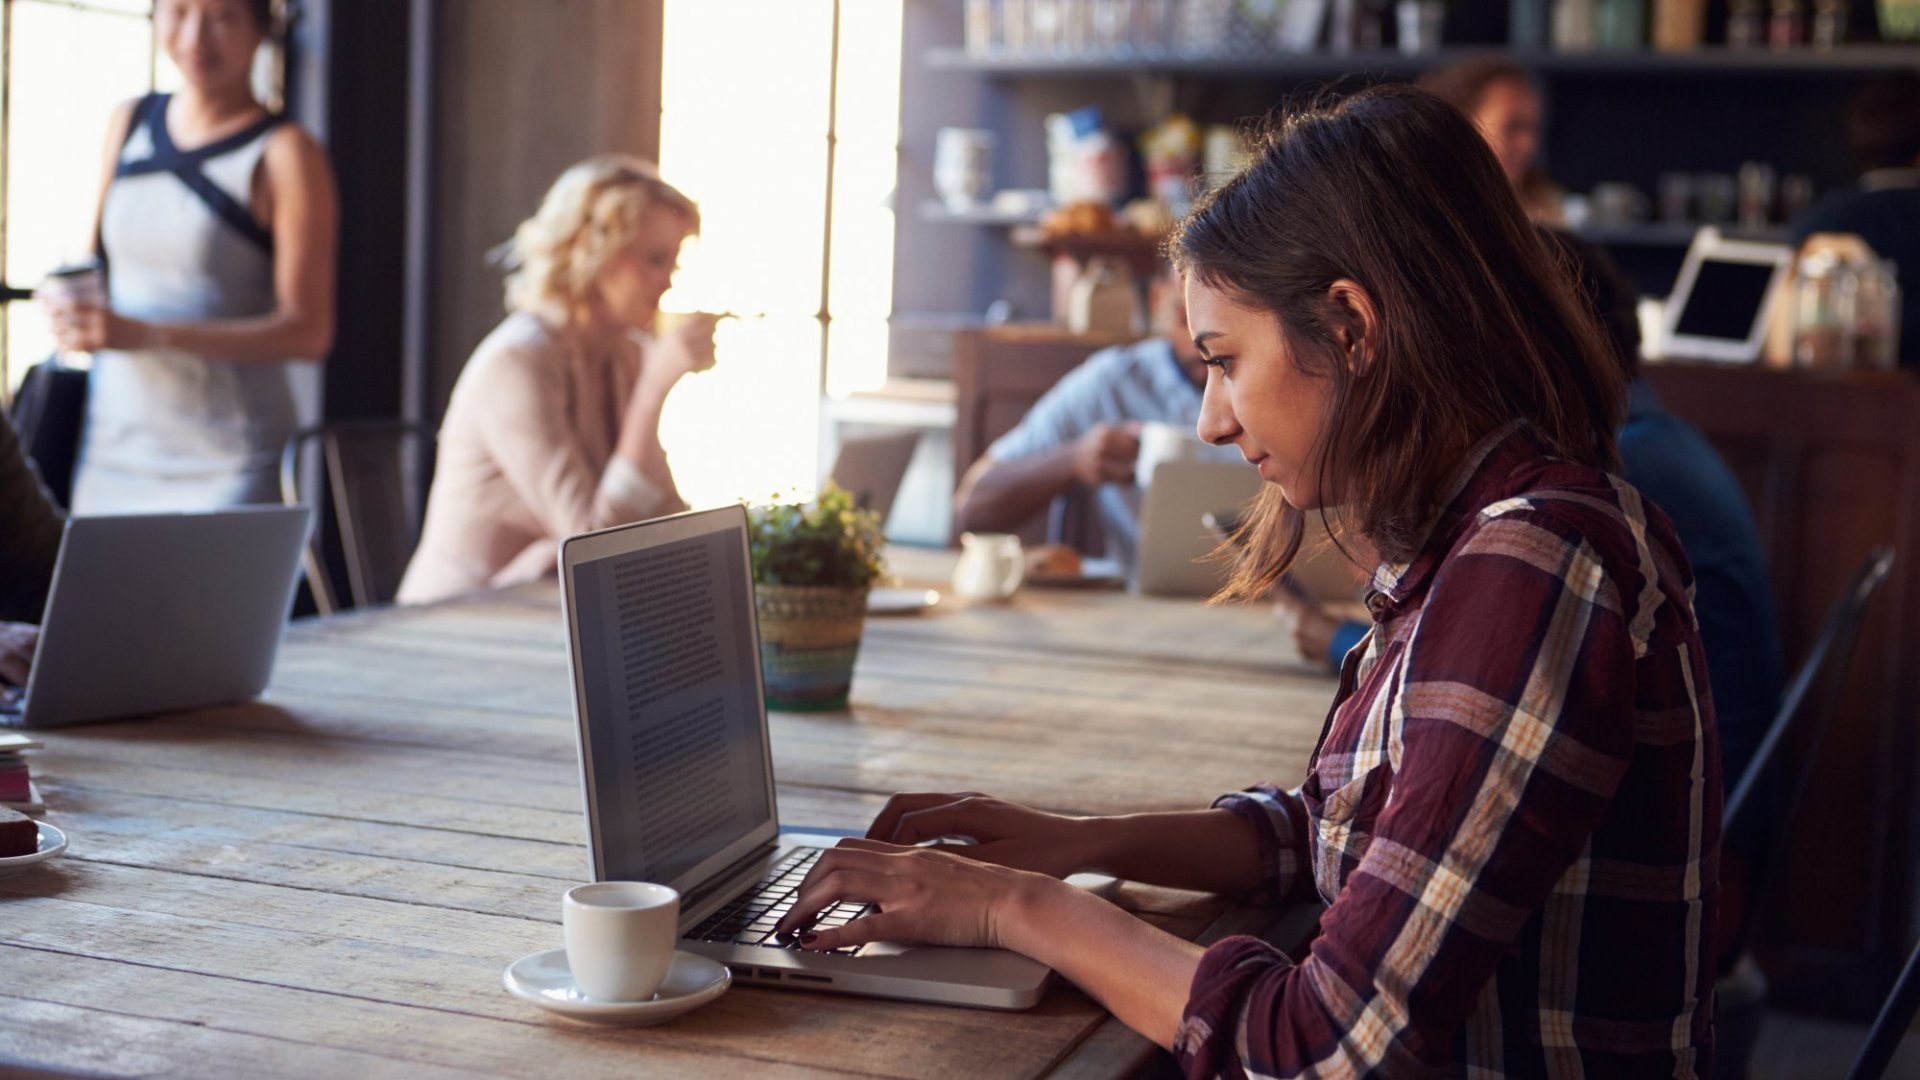 Warning: These 7 Public Wi-Fi Risks Could Endanger Your Business